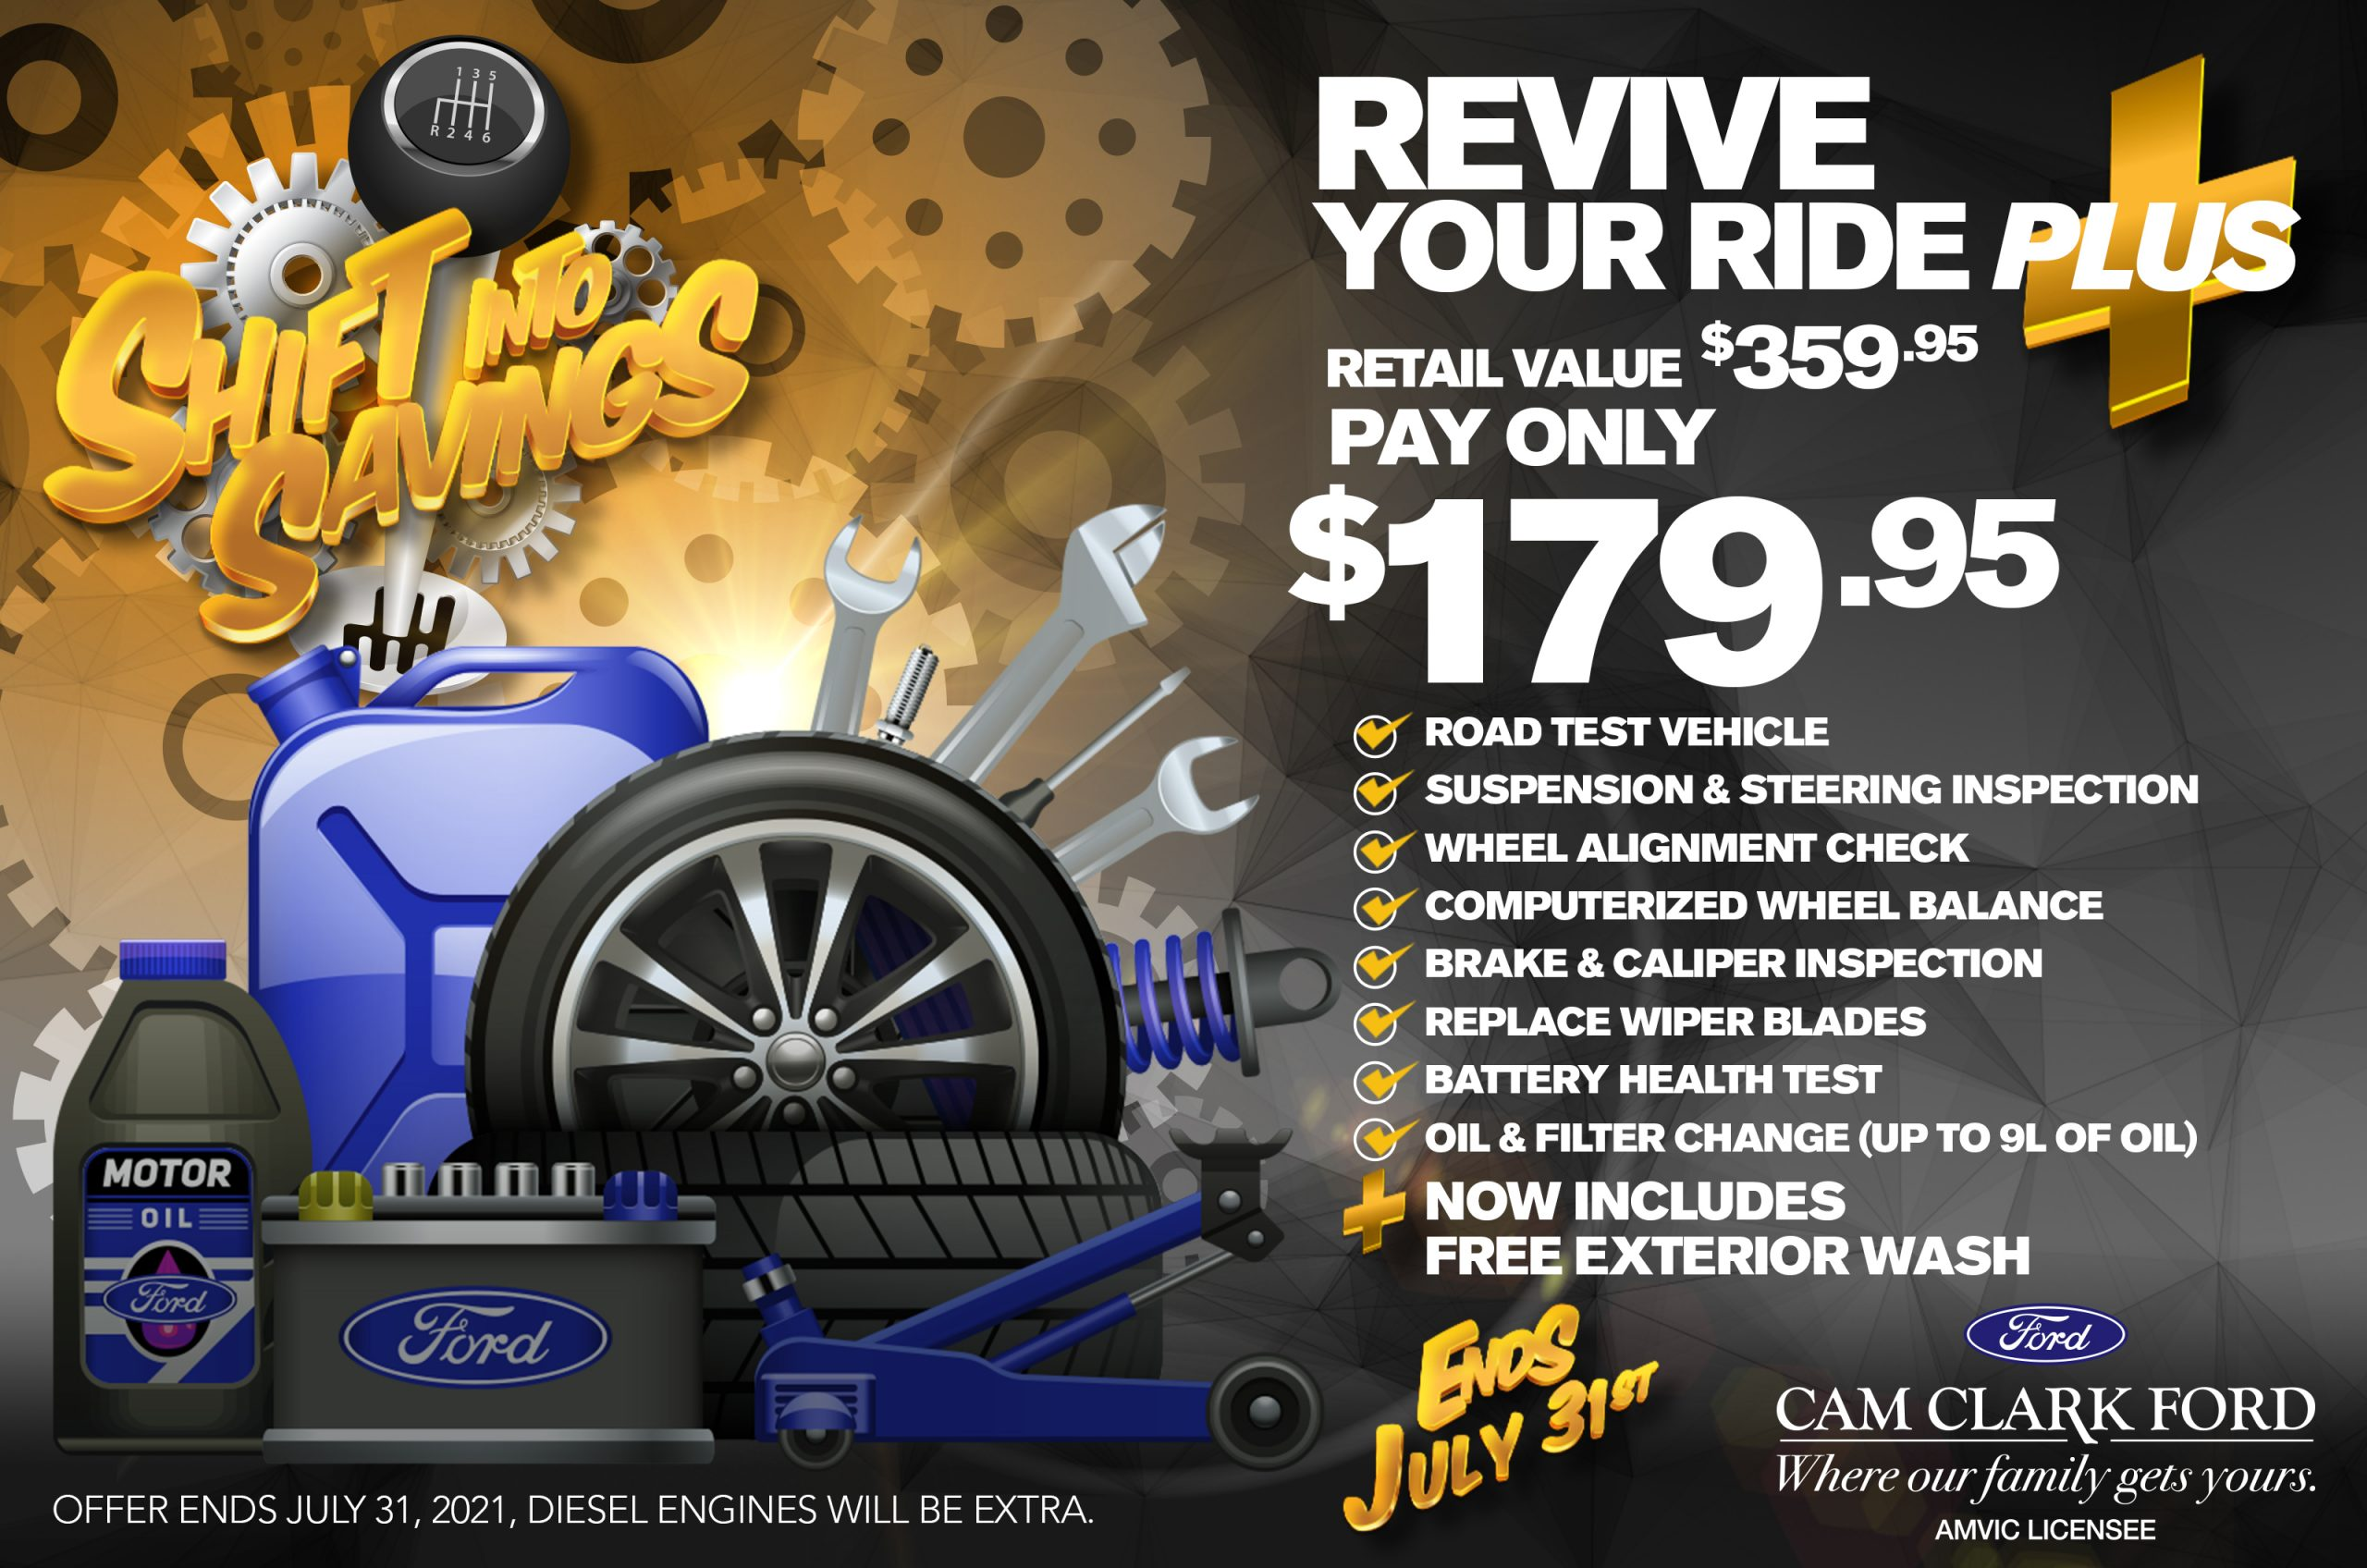 http://Revive%20Your%20Ride%20Plus